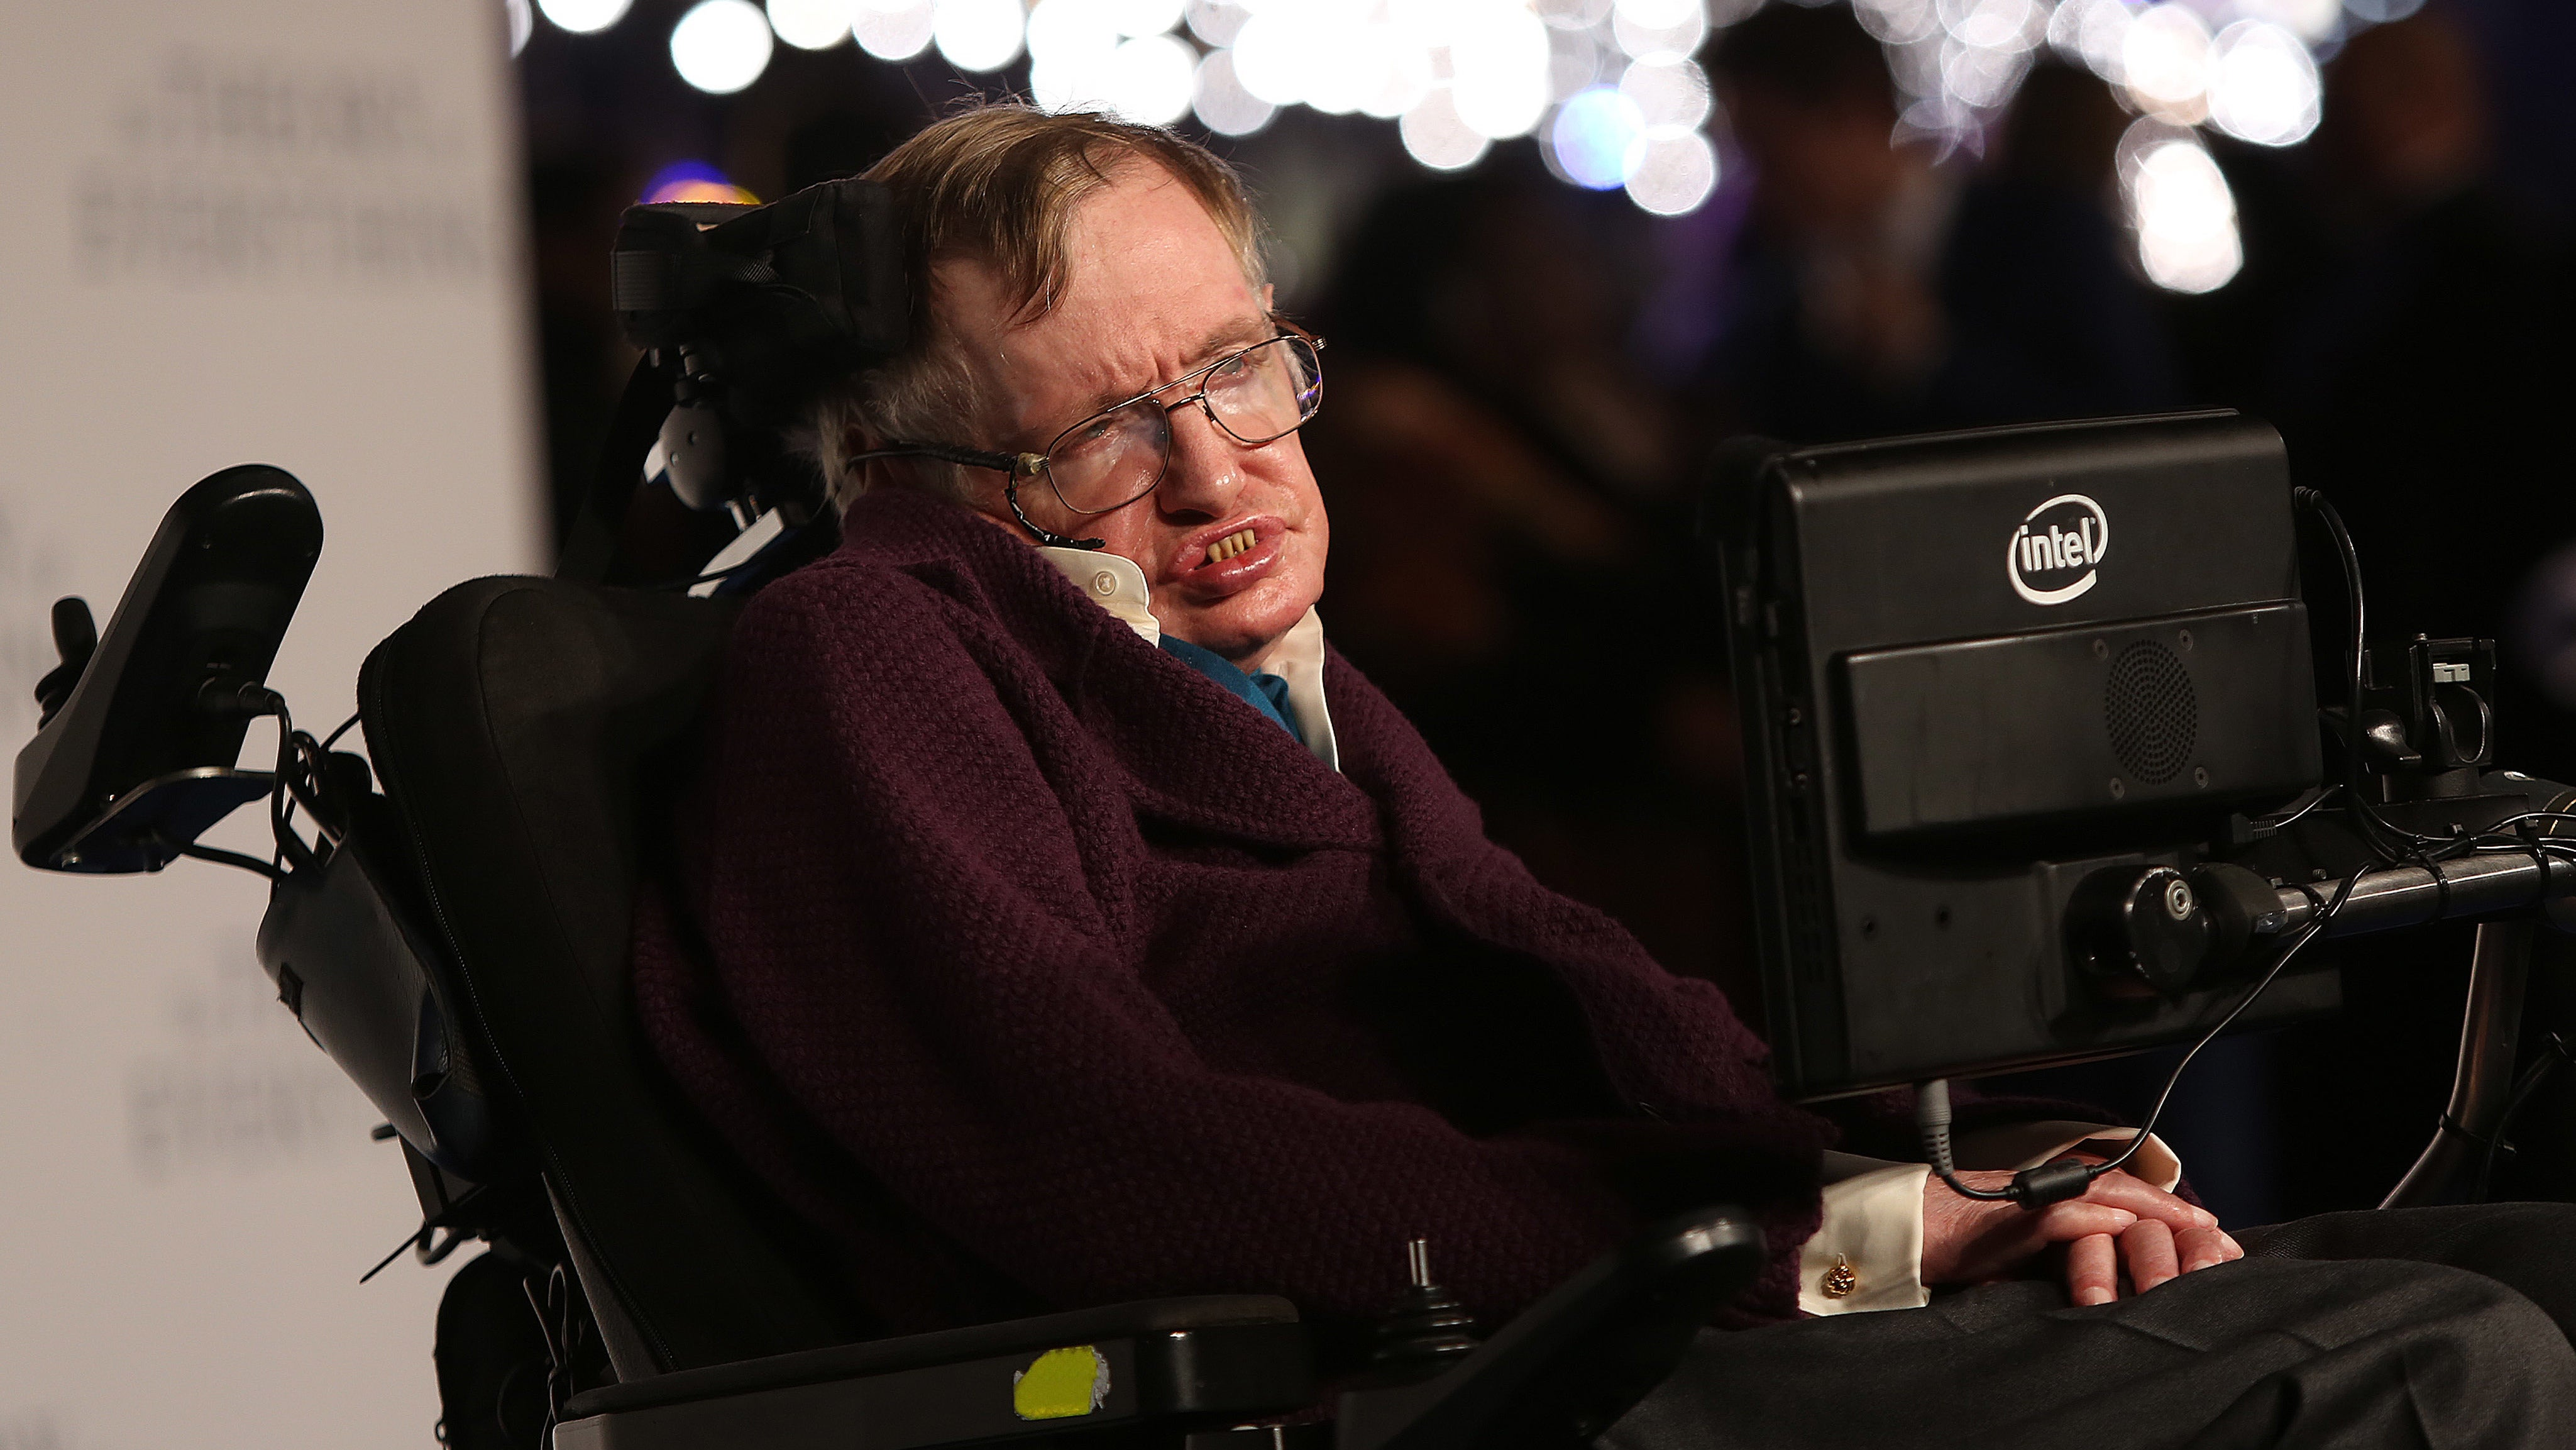 Physicists React To Stephen Hawking's Passing